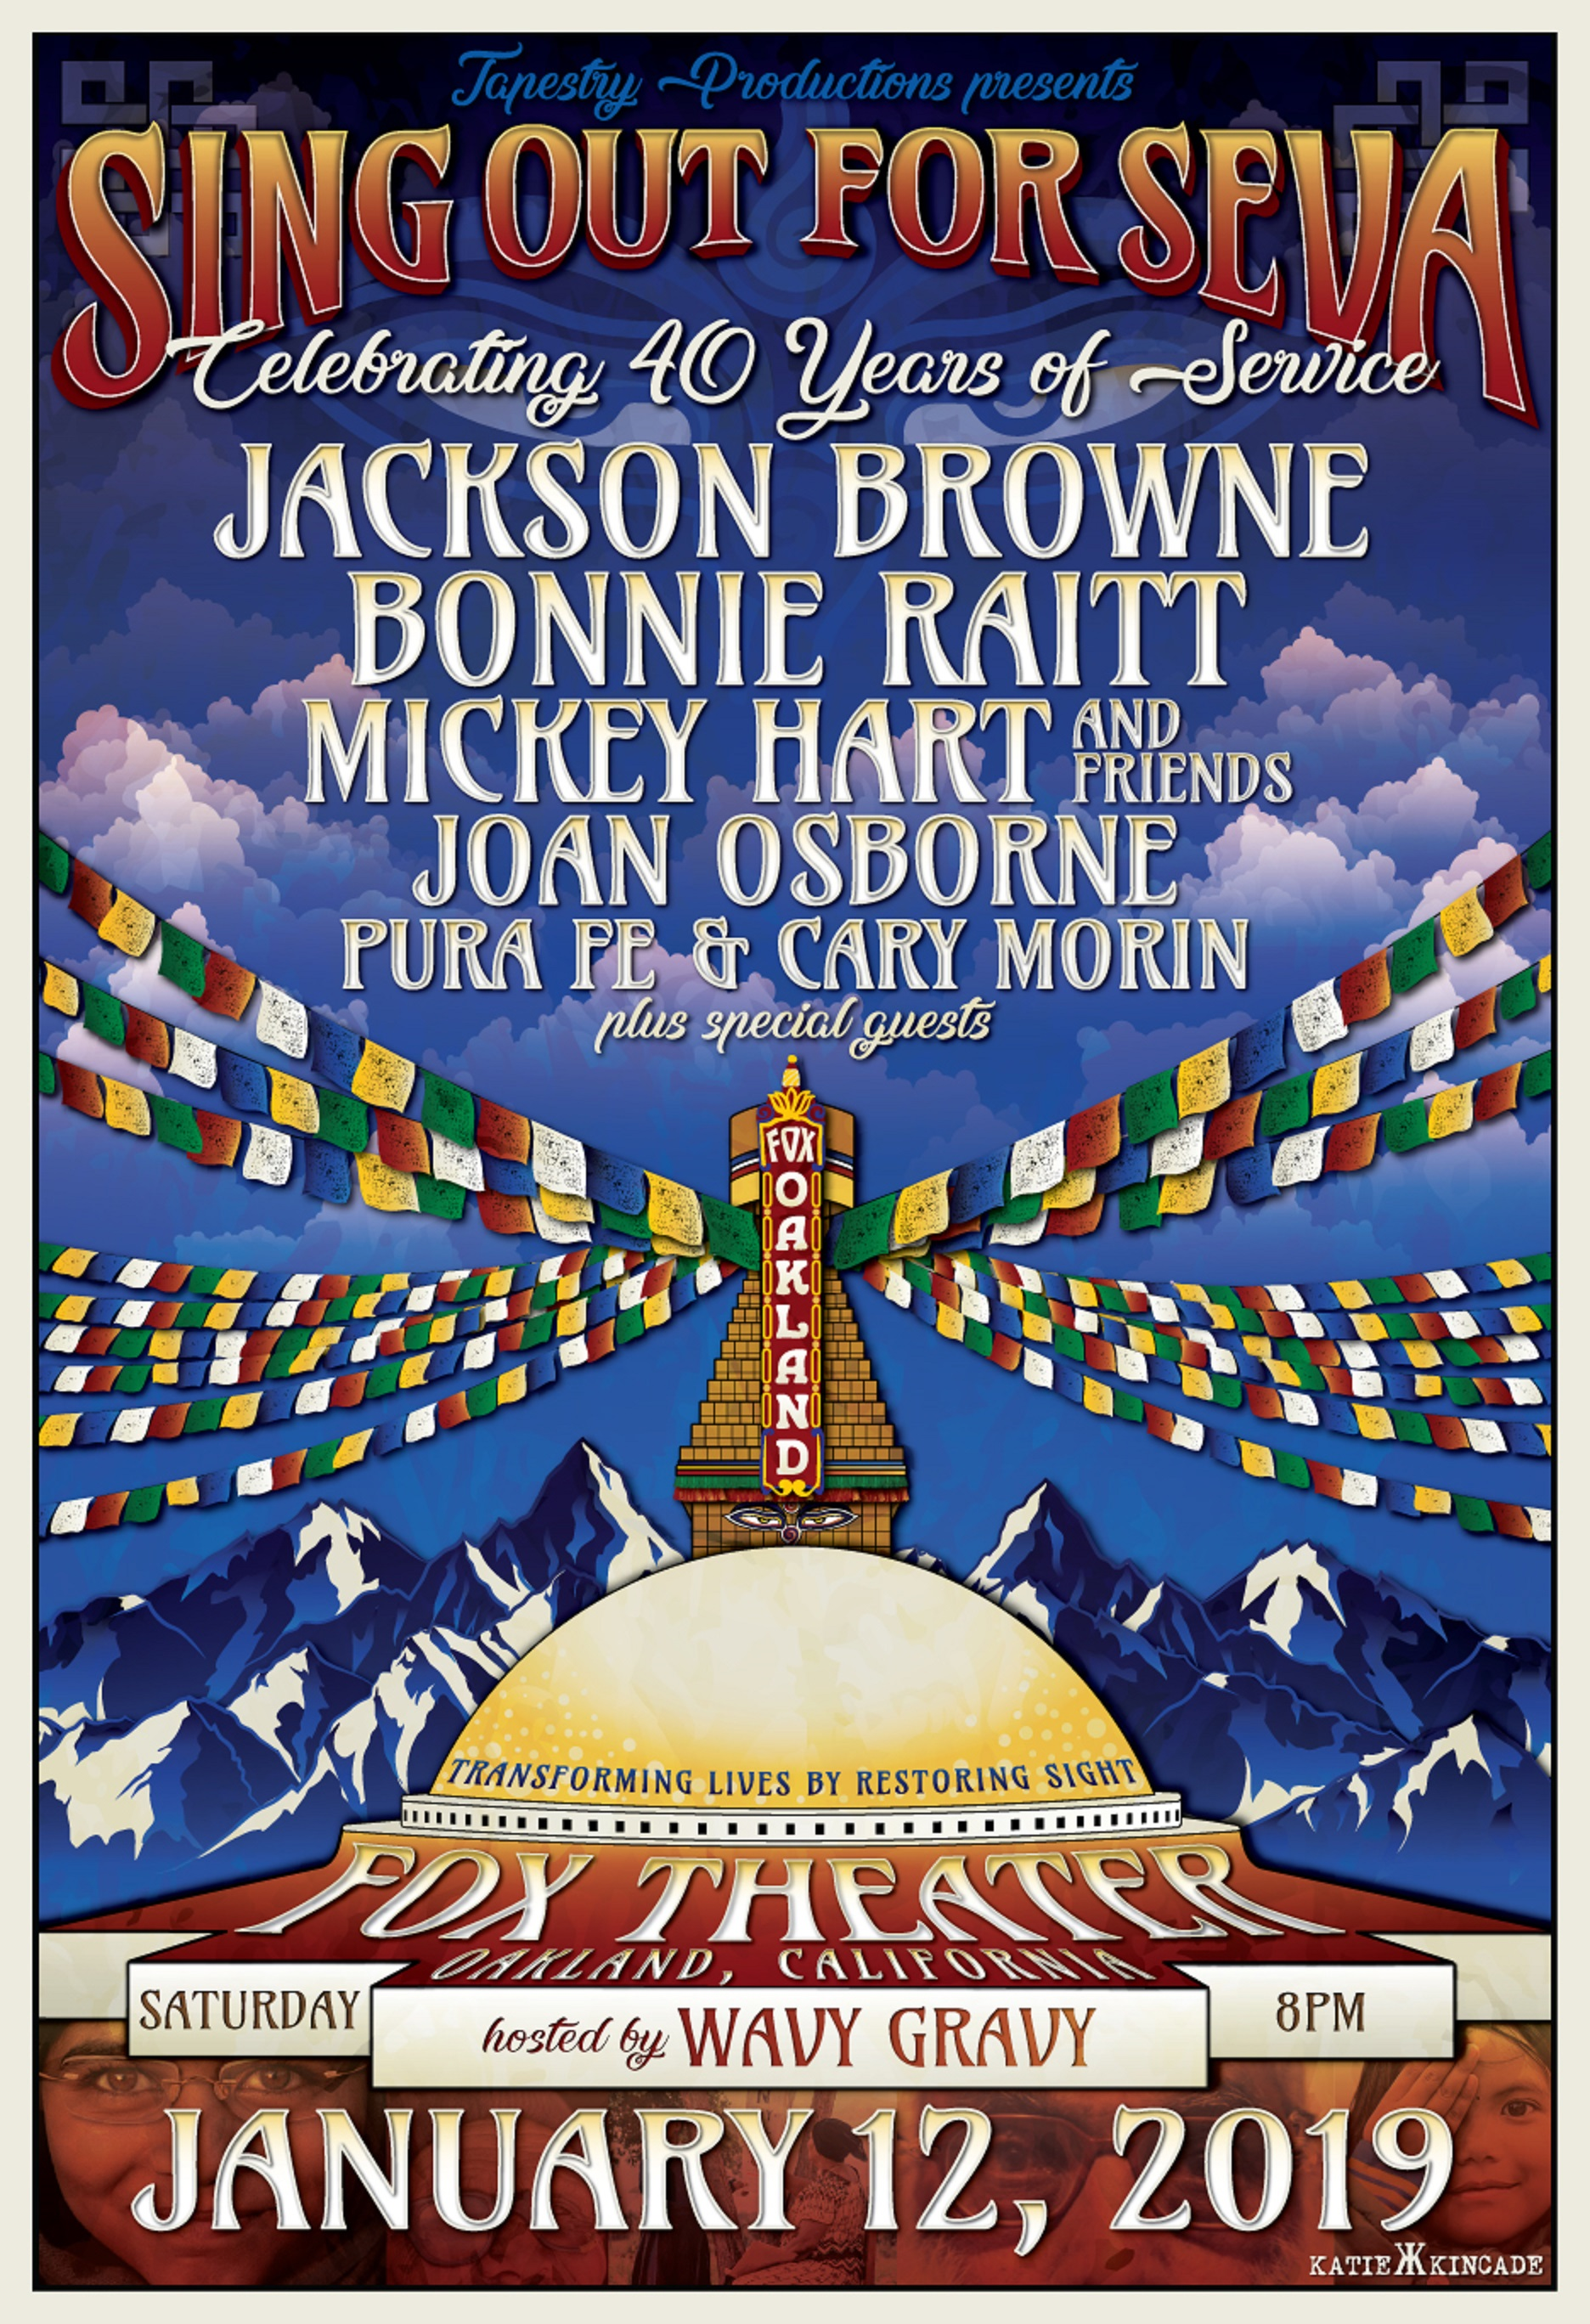 40 Years of Benefit Concerts for Seva - Jackson Browne, Bonnie Raitt to Play Anniversary